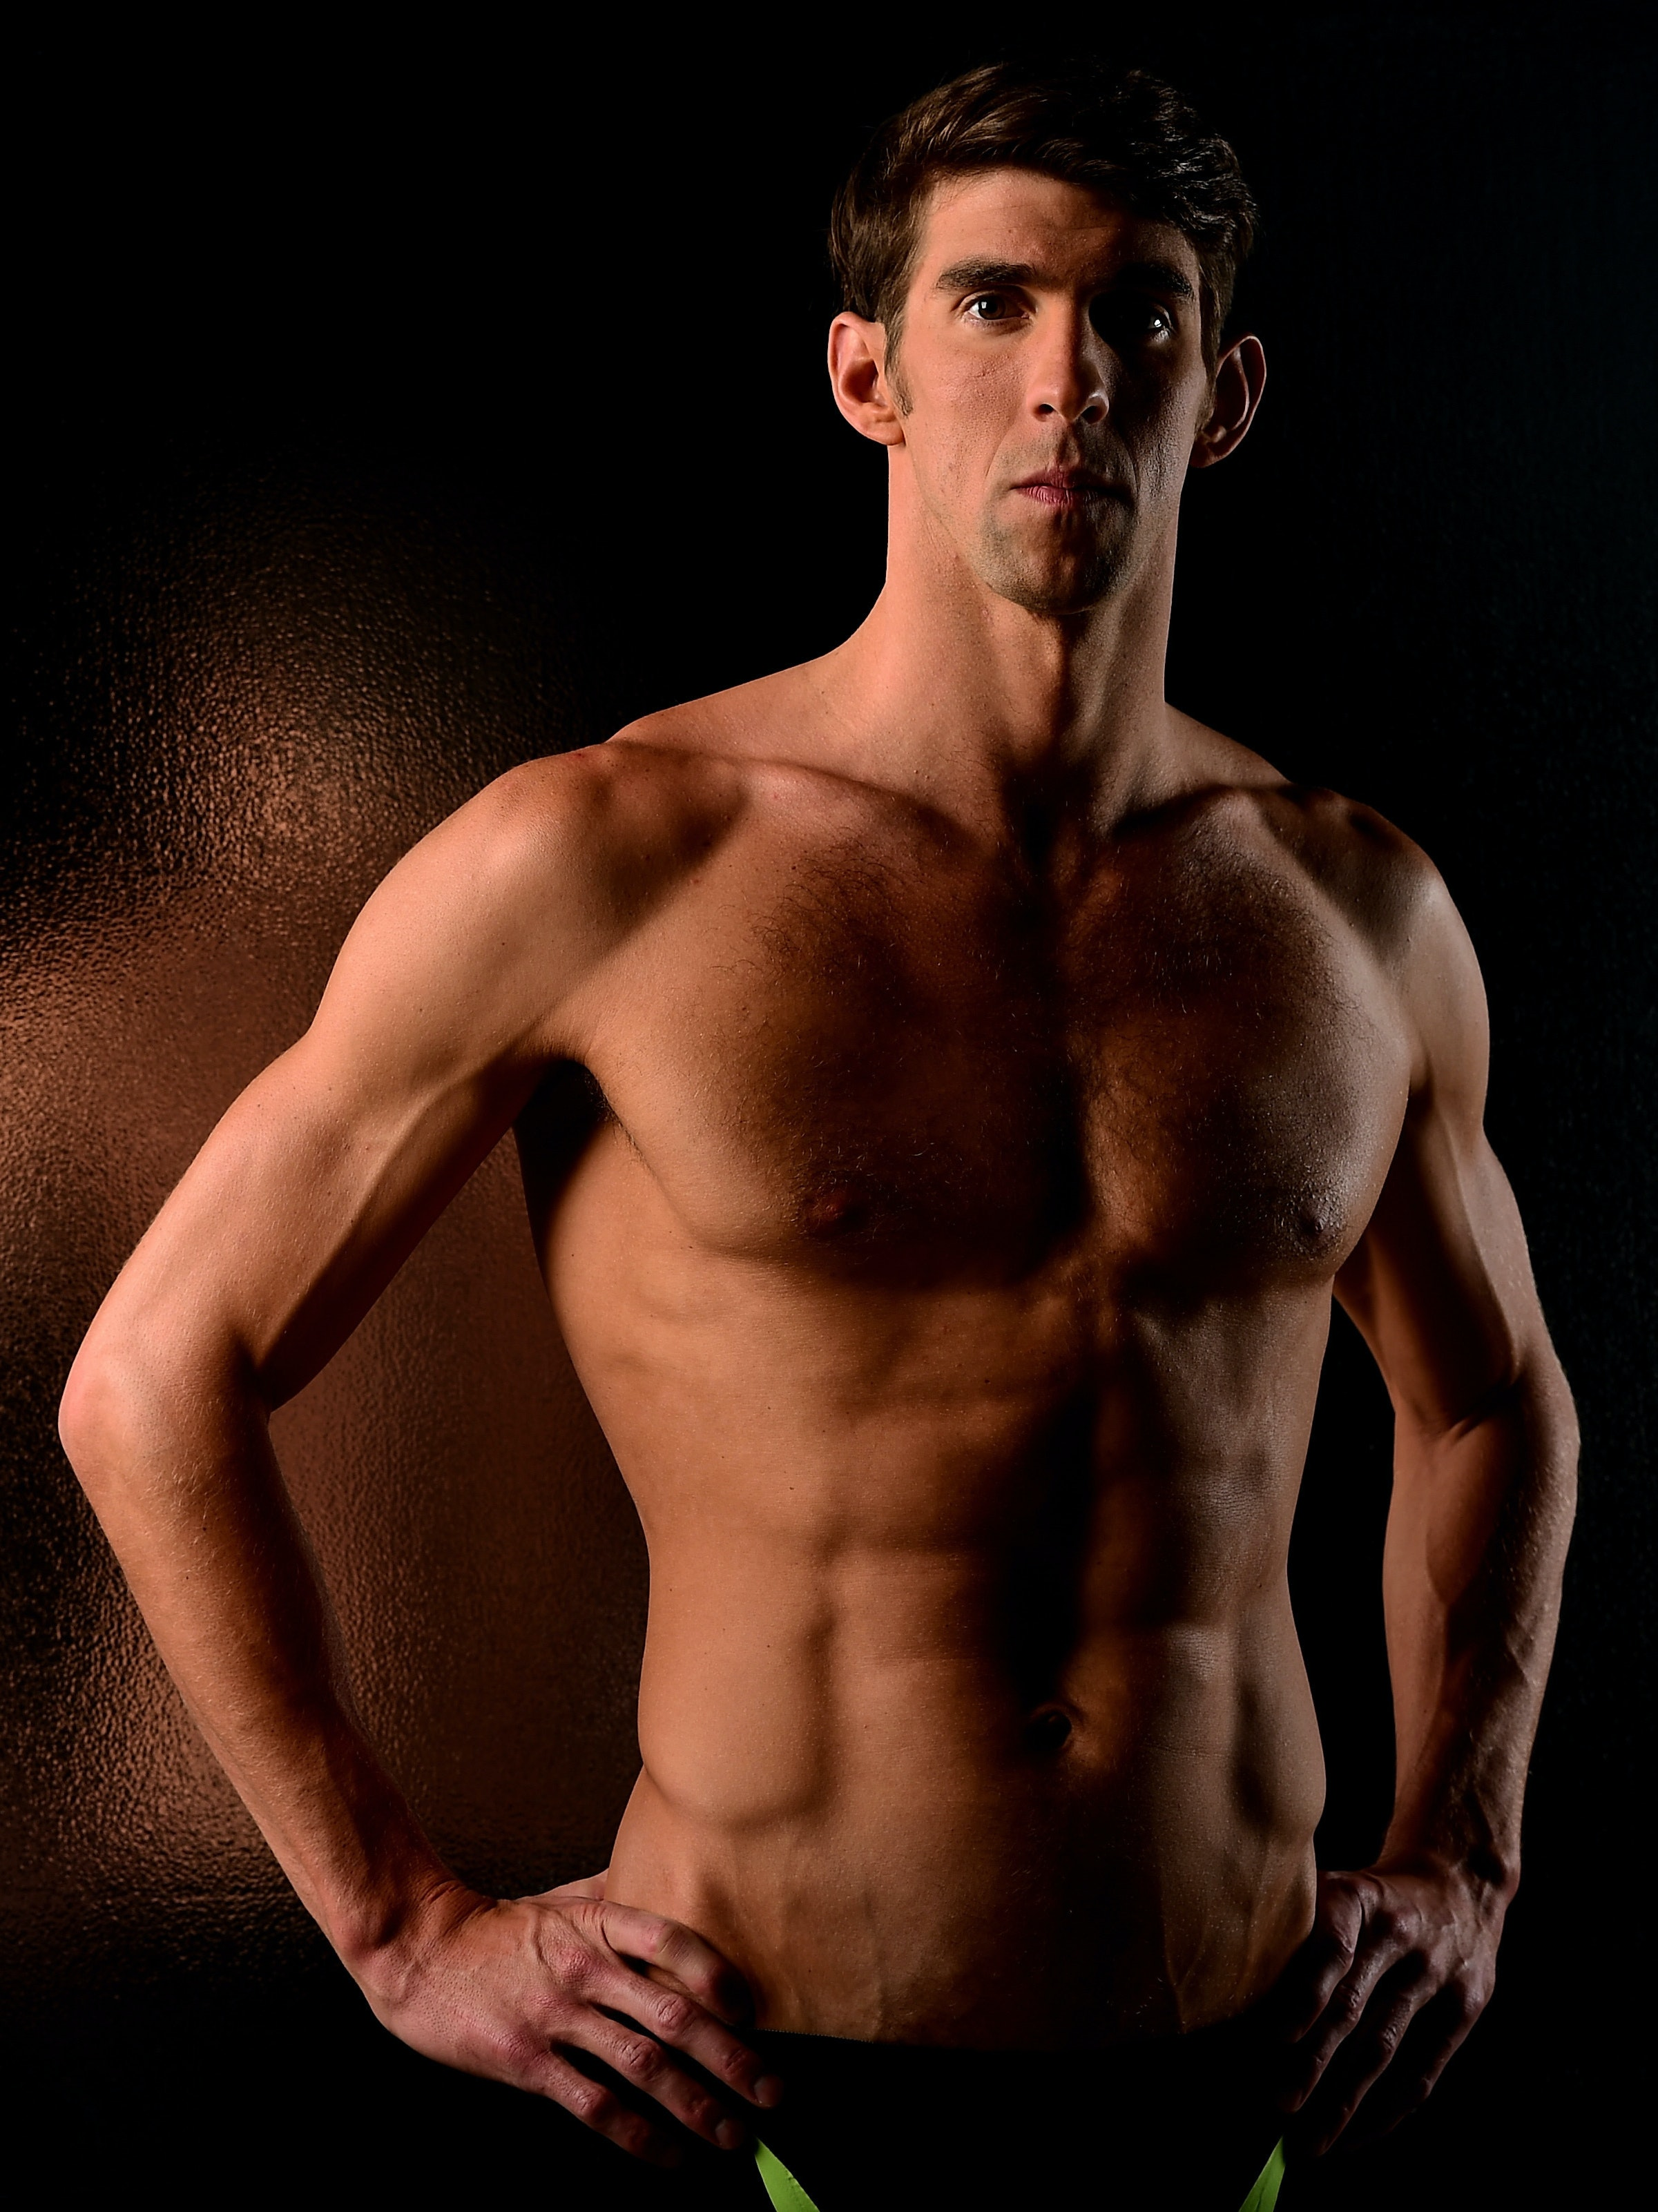 Swimmer Michael Phelps poses for a portrait at the USOC Rio Olympics Shoot at Quixote Studios on November 21, 2015 in Los Angeles, California.